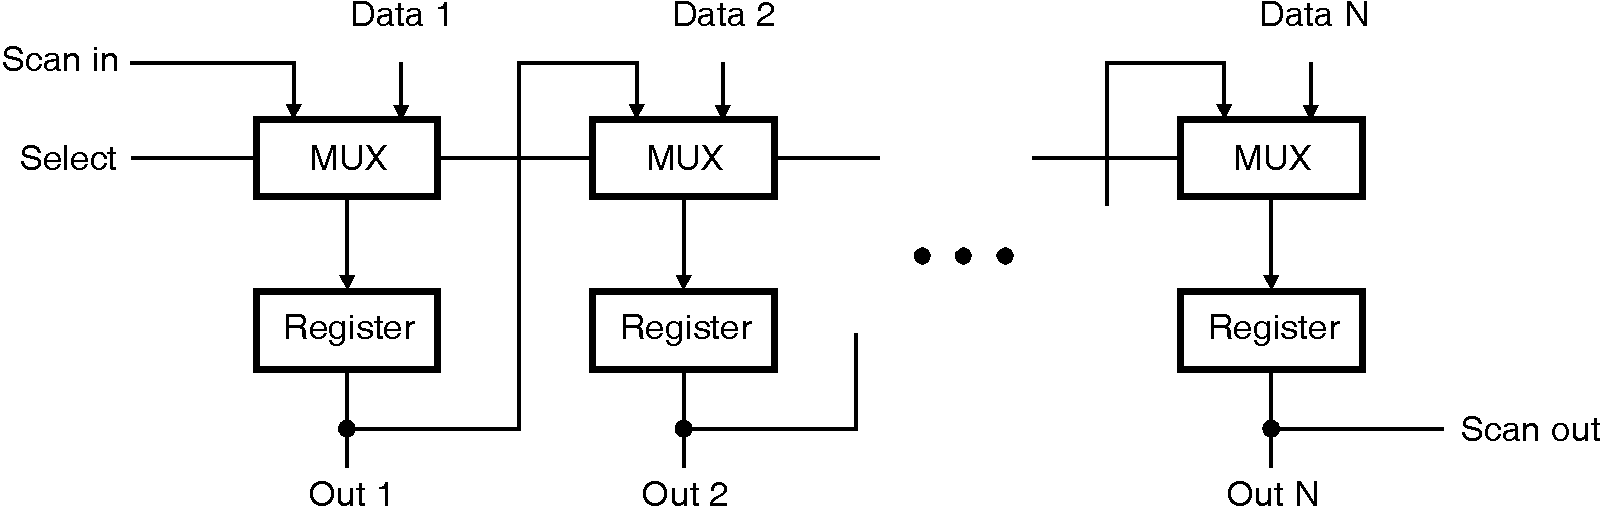 Vlsi 2 1 Mux Logic Diagram During The Generation Of Test Patterns Automatic Pattern Considers Flip Flops As I O Pins When Circuit With Scan Path Is Operated